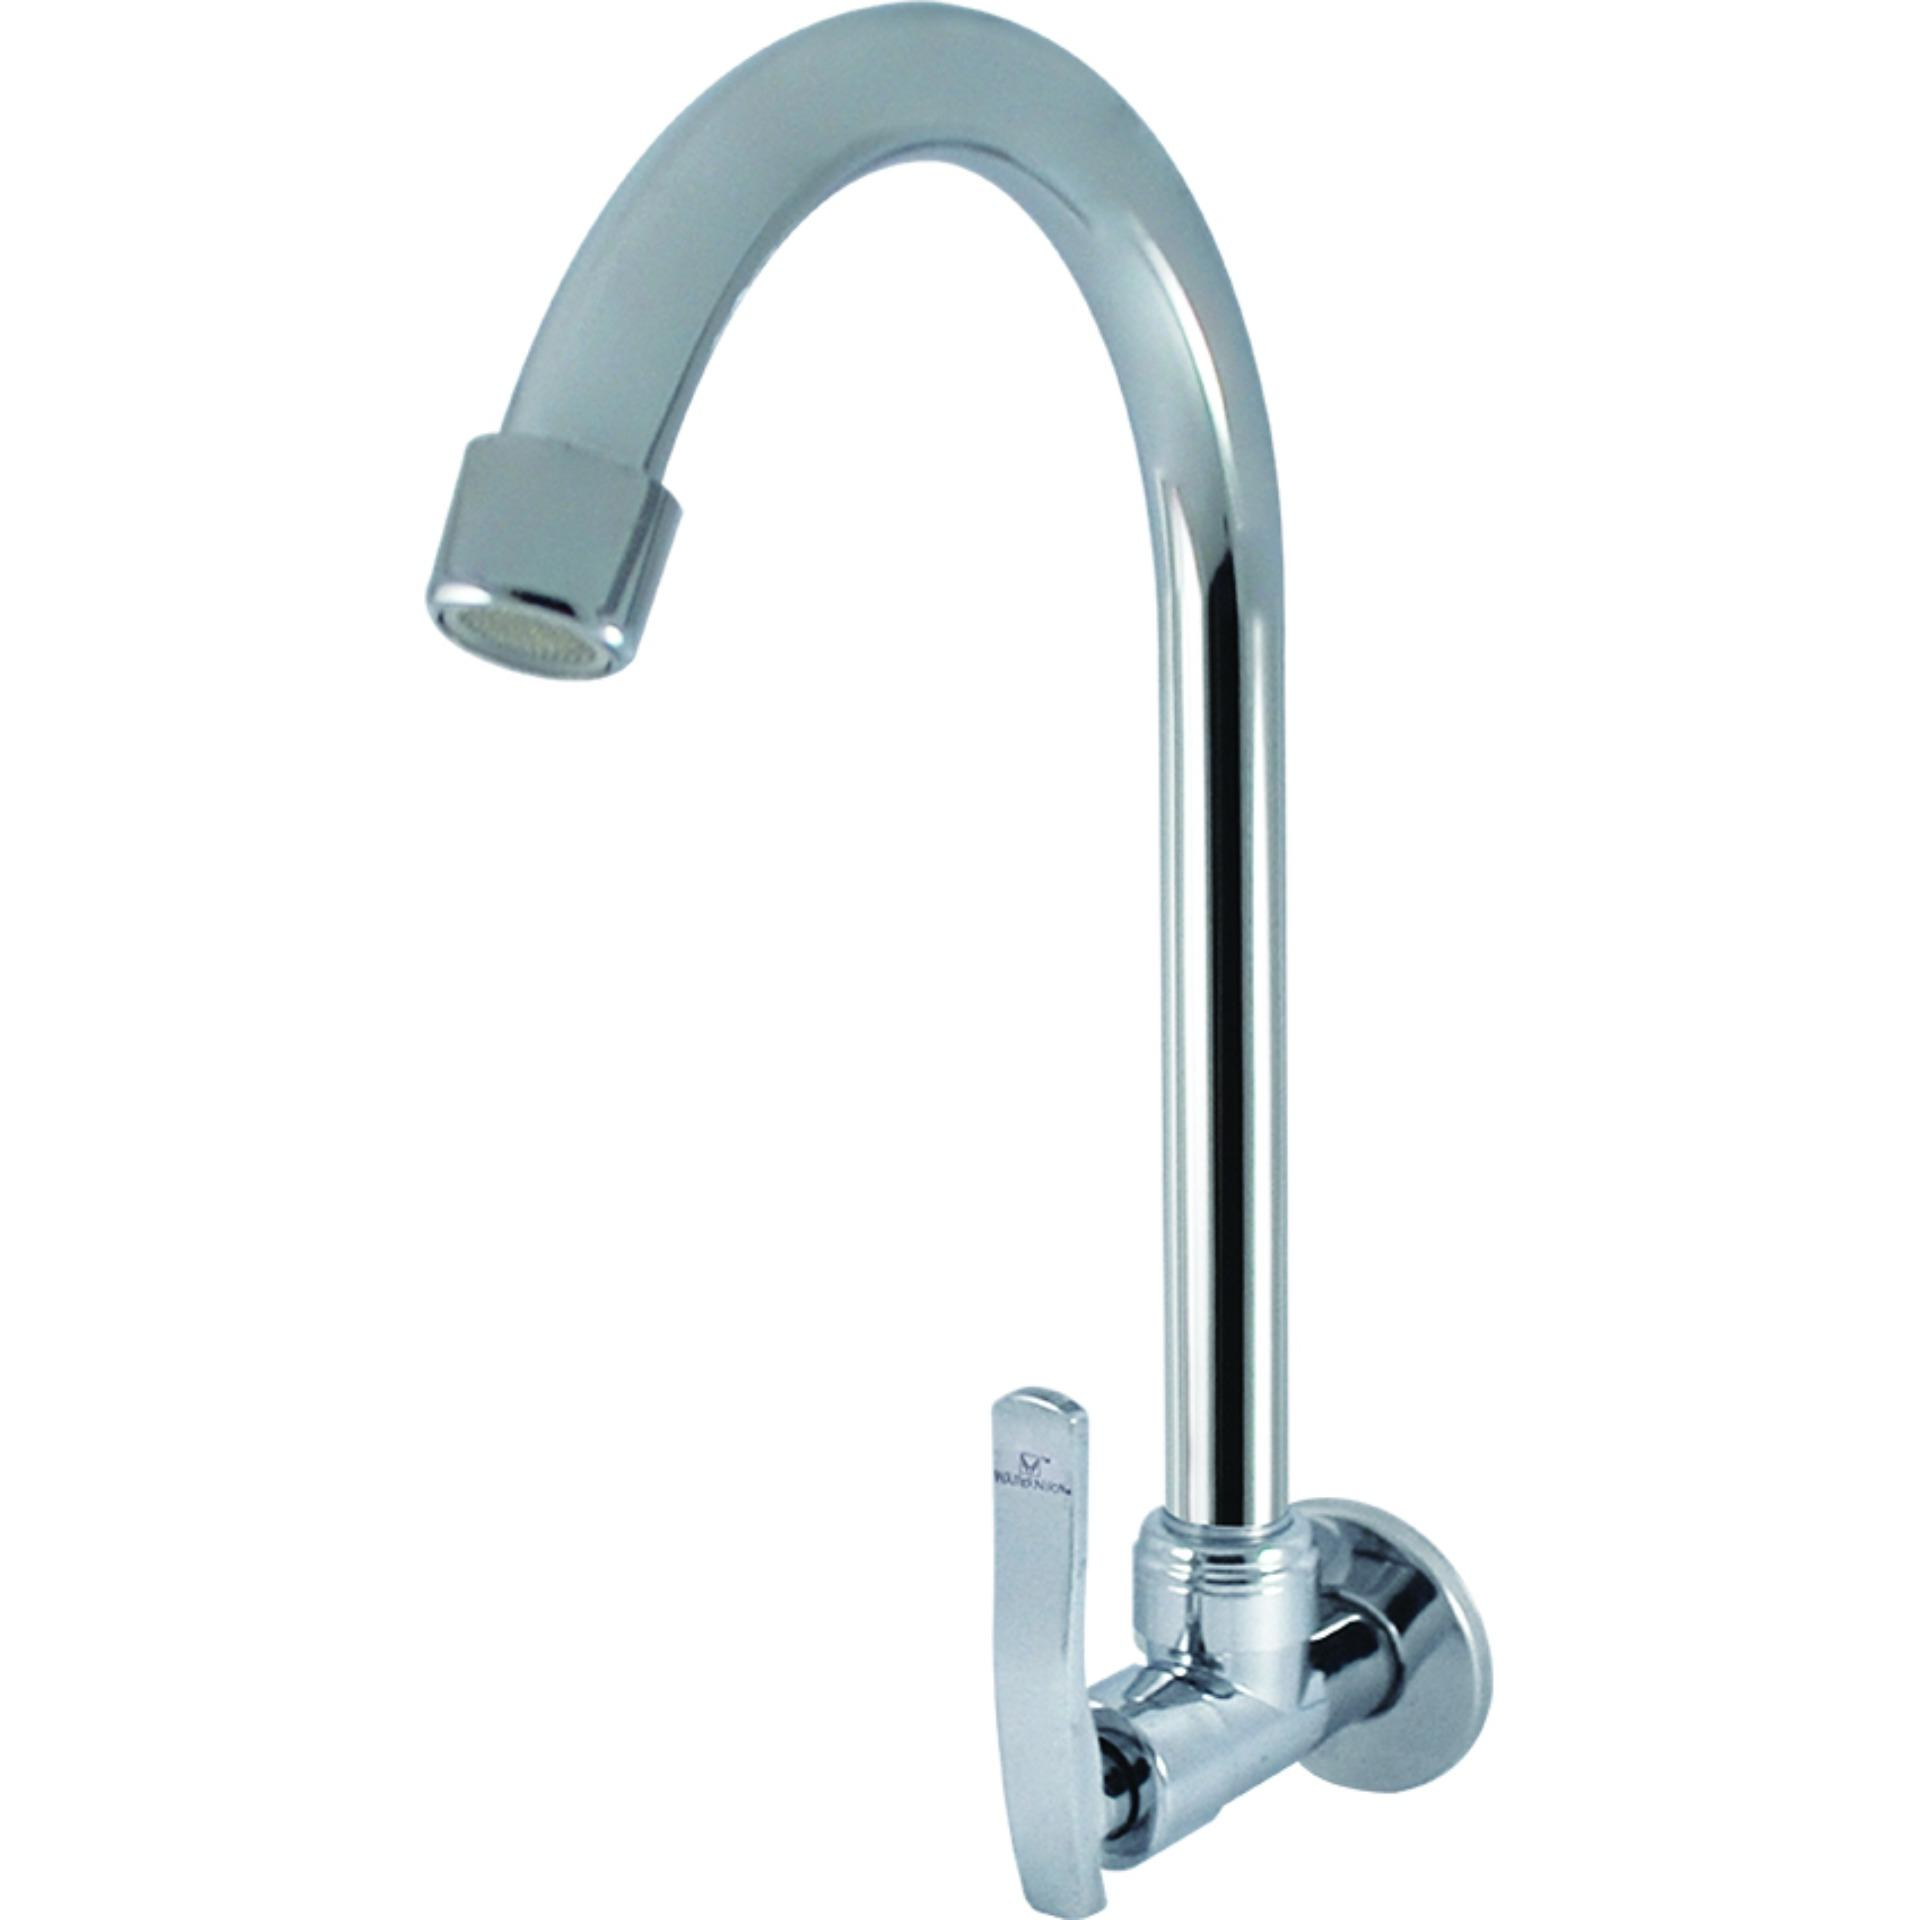 Wassernison Wall Mounted Hybrid Goose Neck Faucet in Chrome Finish ...